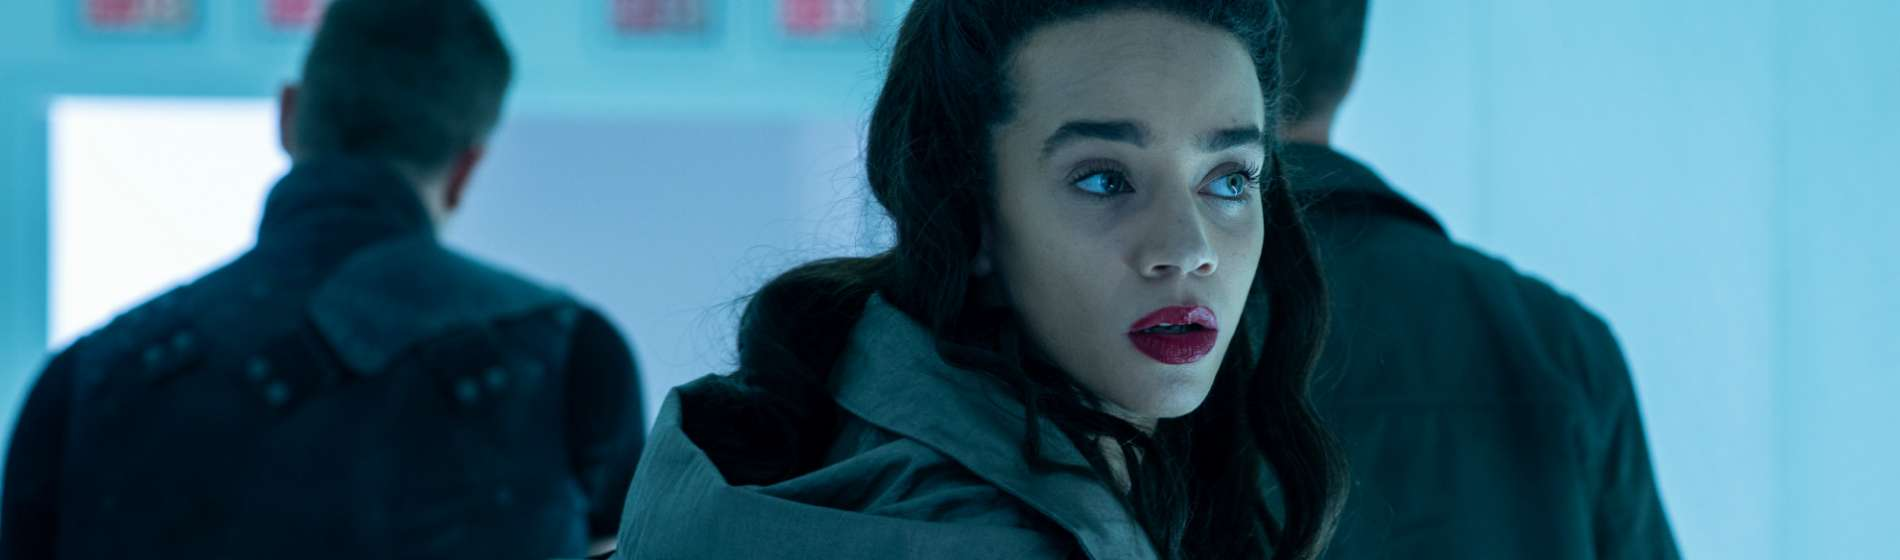 Killjoys-Season-5-Hannah-John-Kamen-Feature